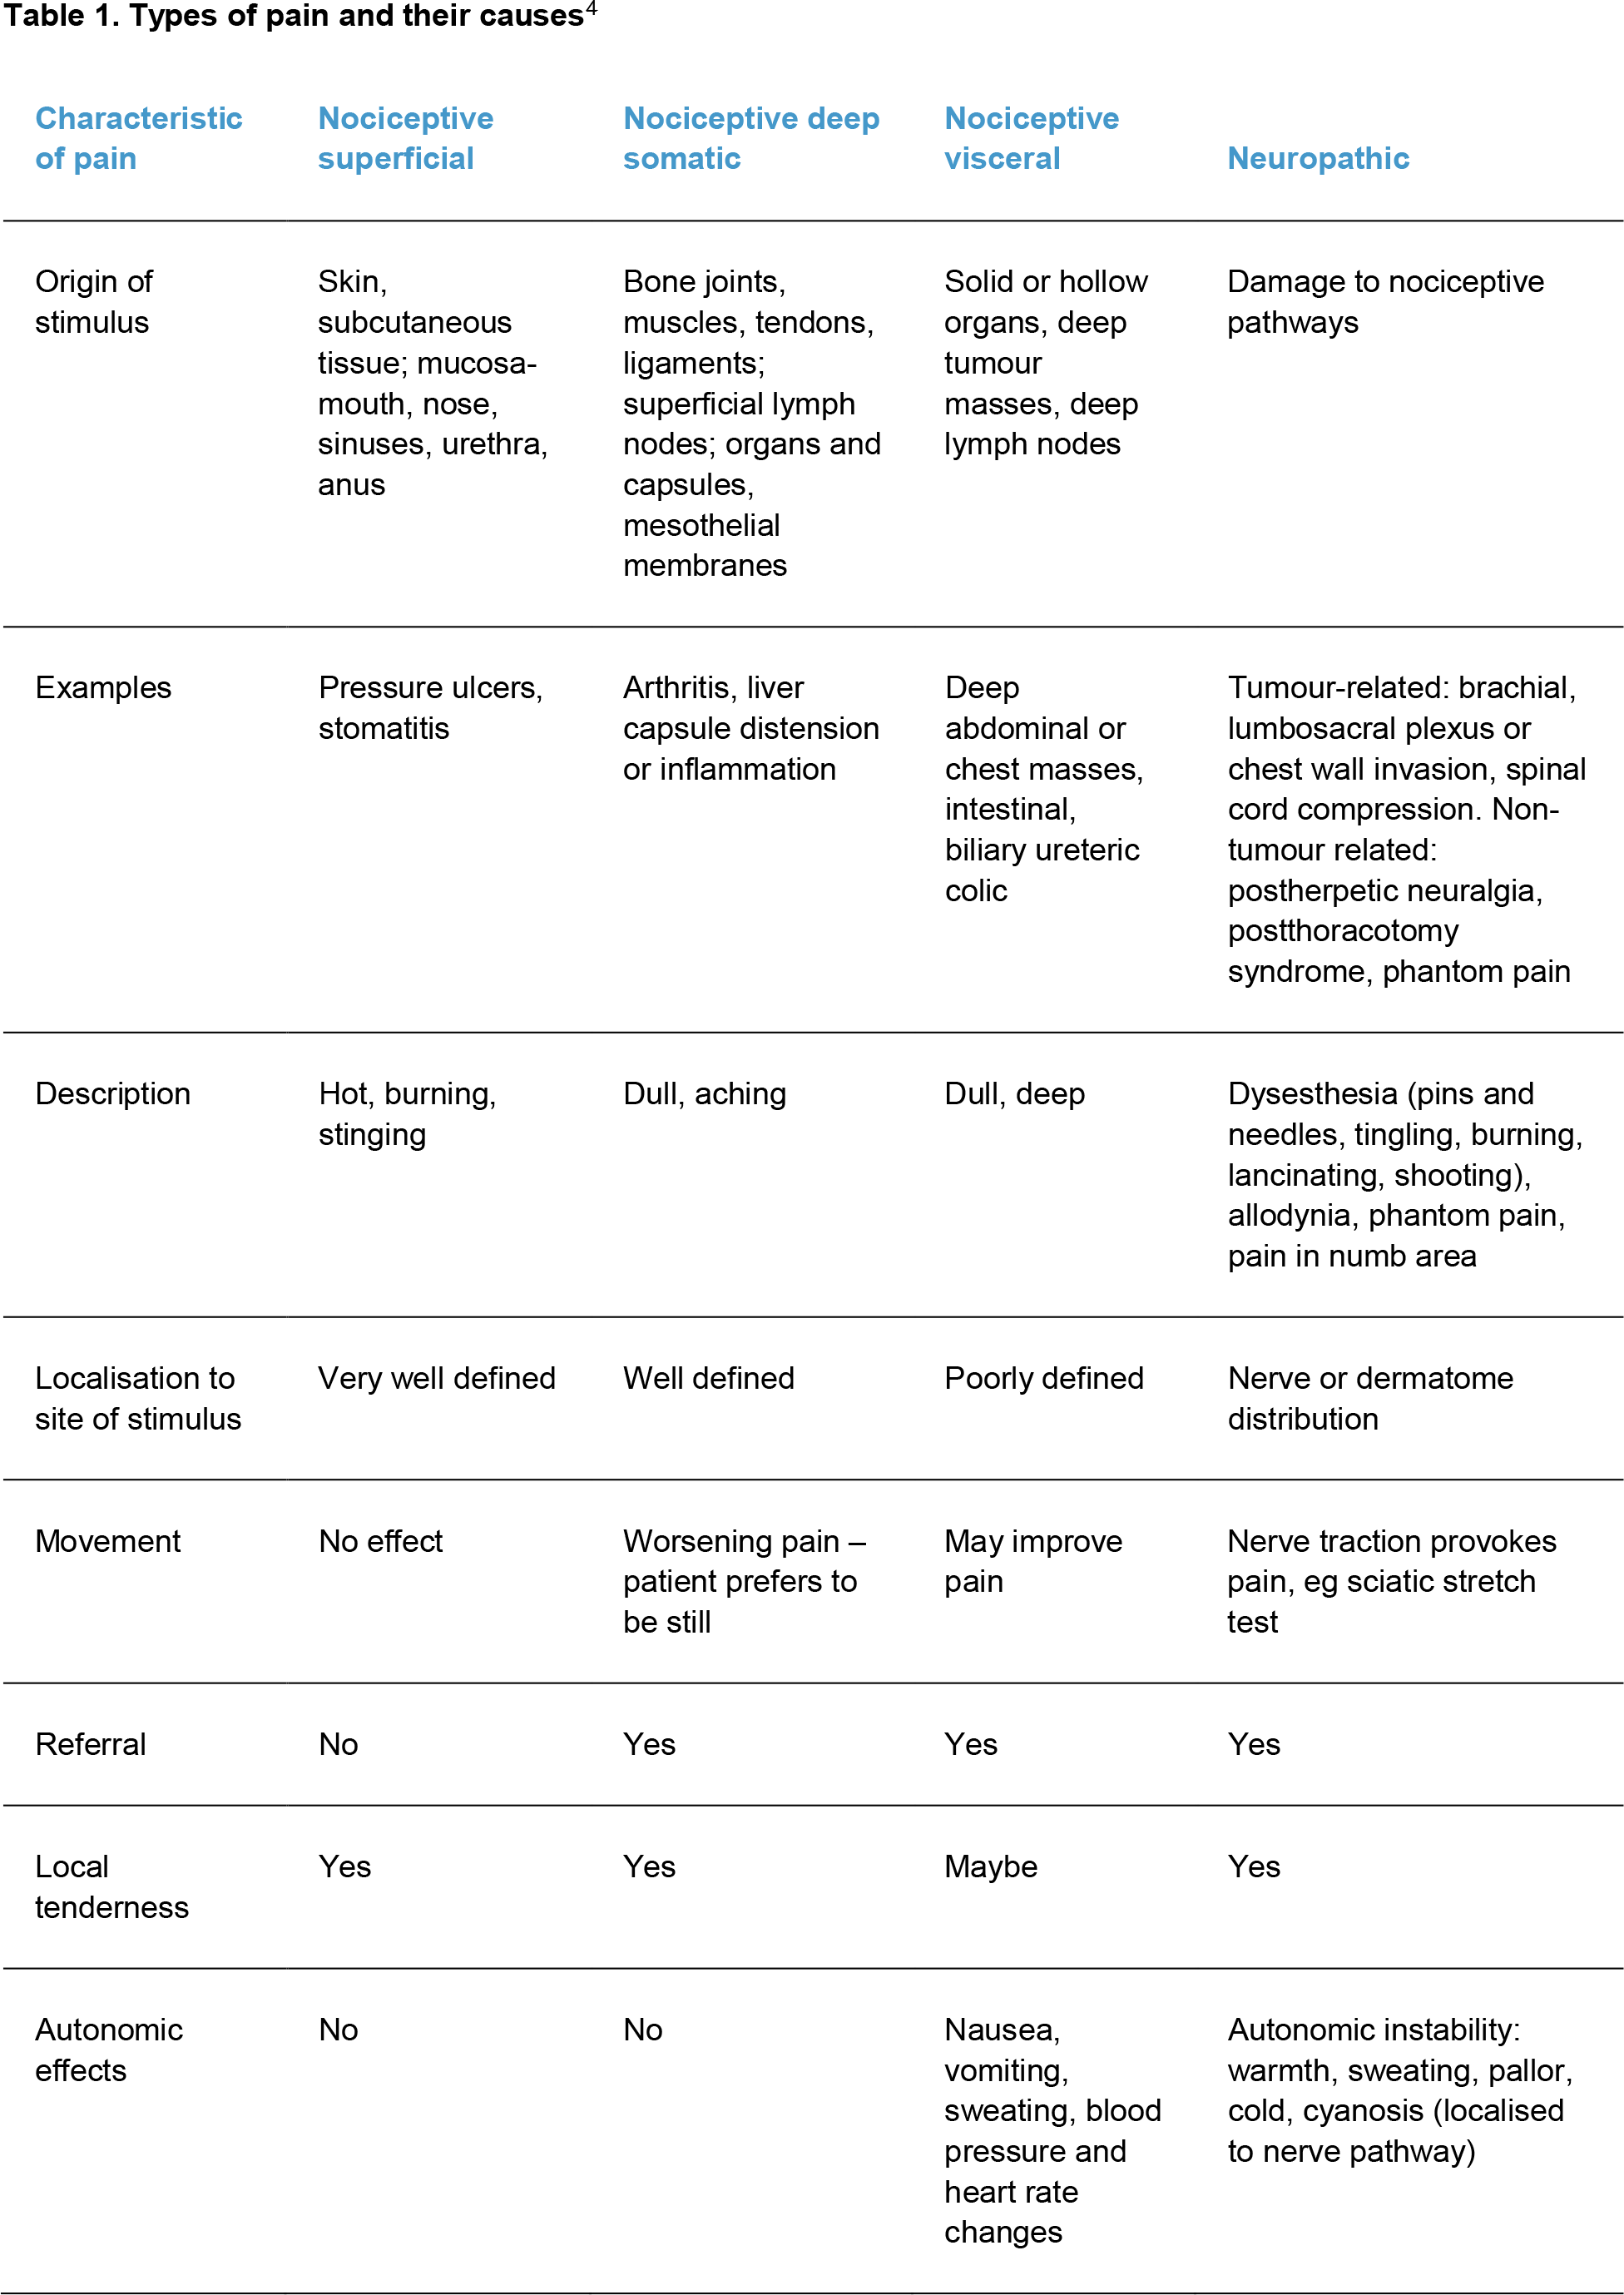 Table 1. Types of pain and their causes